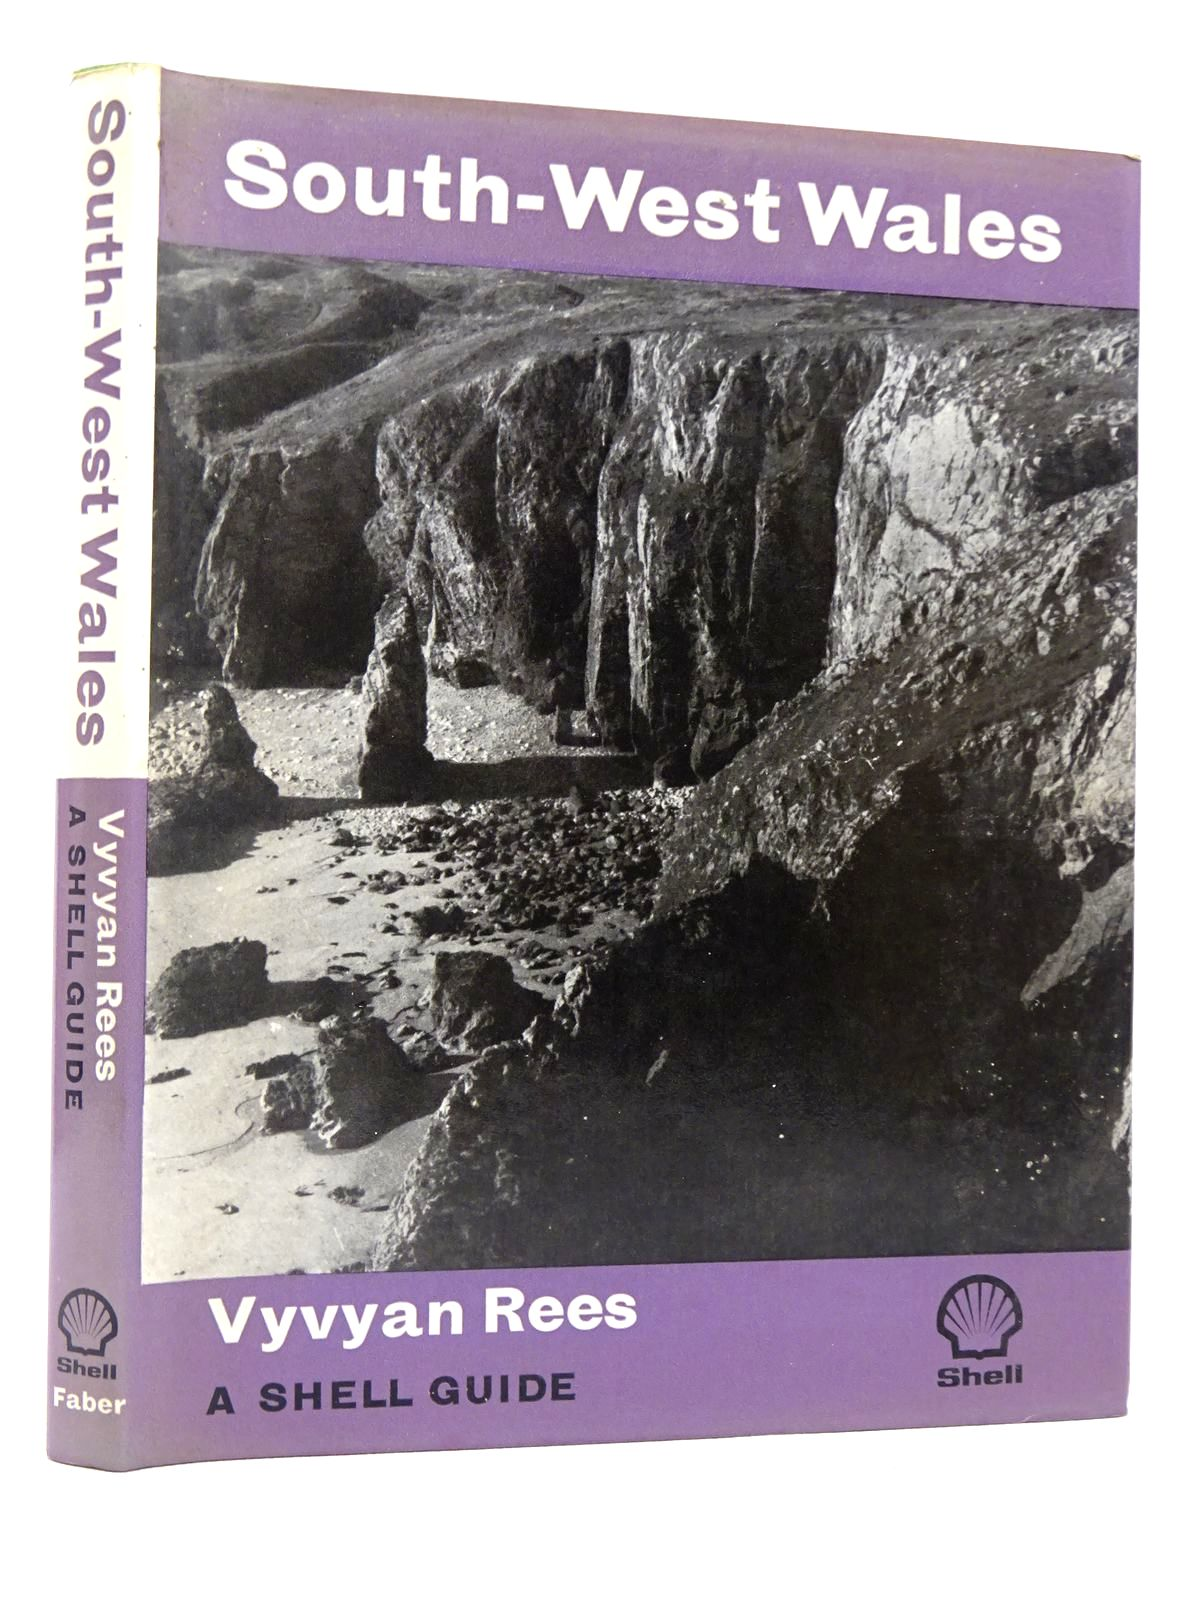 Photo of SOUTH-WEST WALES A SHELL GUIDE written by Rees, Vyvyan published by Faber & Faber (STOCK CODE: 1817308)  for sale by Stella & Rose's Books